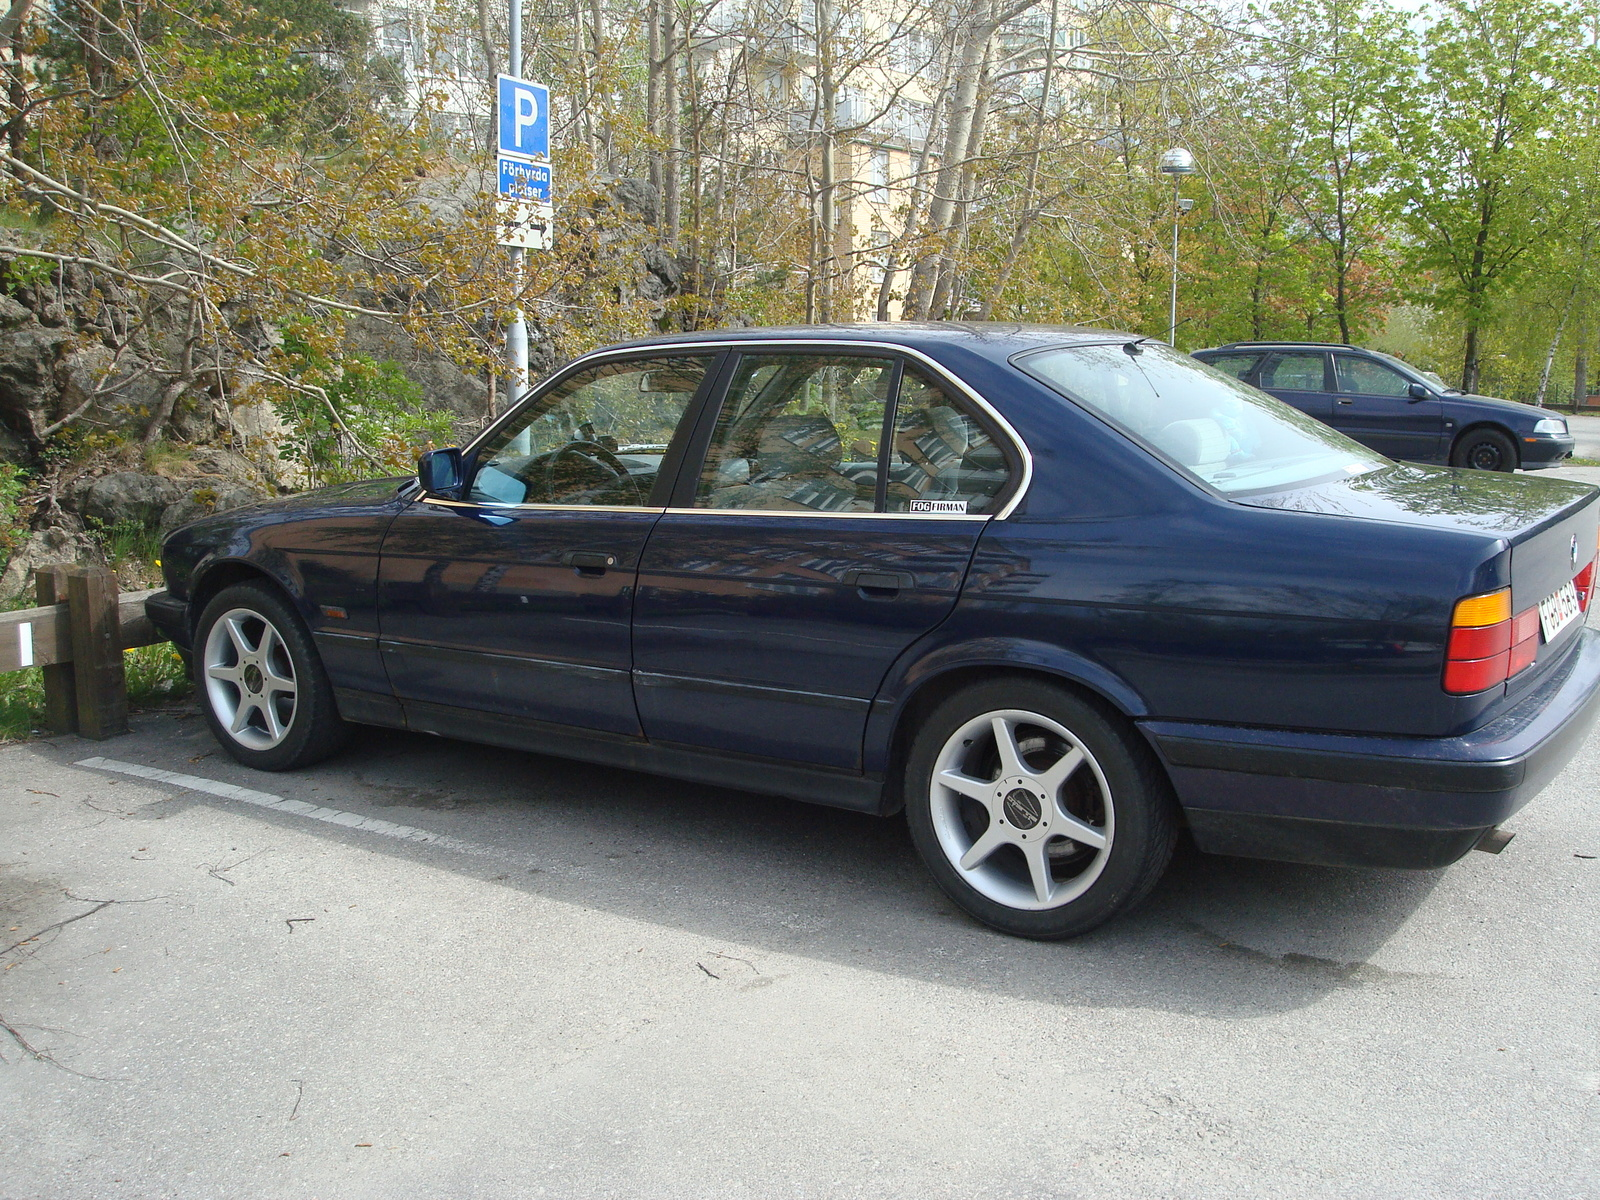 BMW 5 series 518i 1992 photo - 1